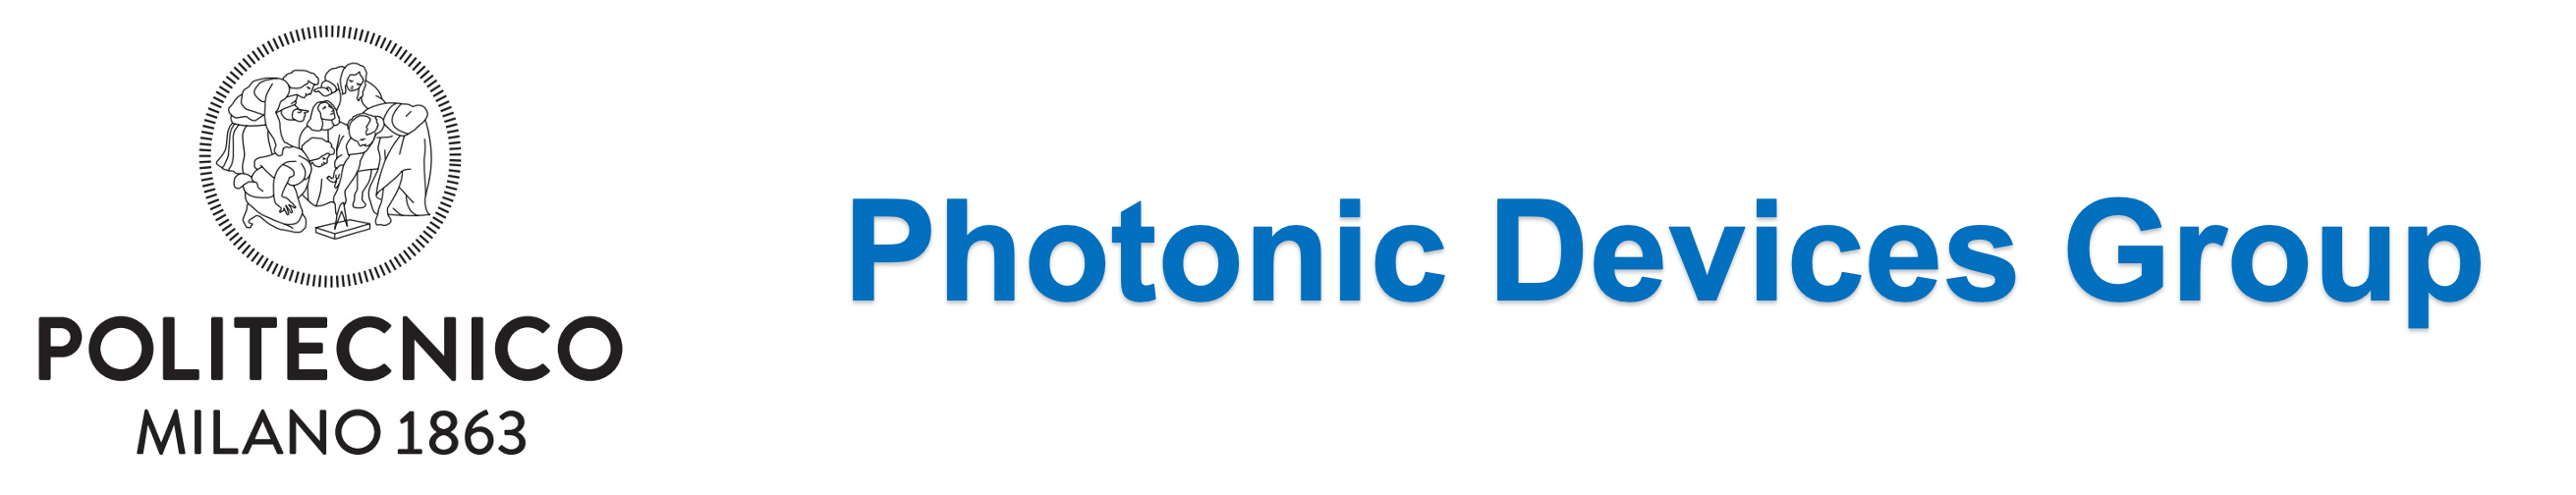 Photonics Devices Group